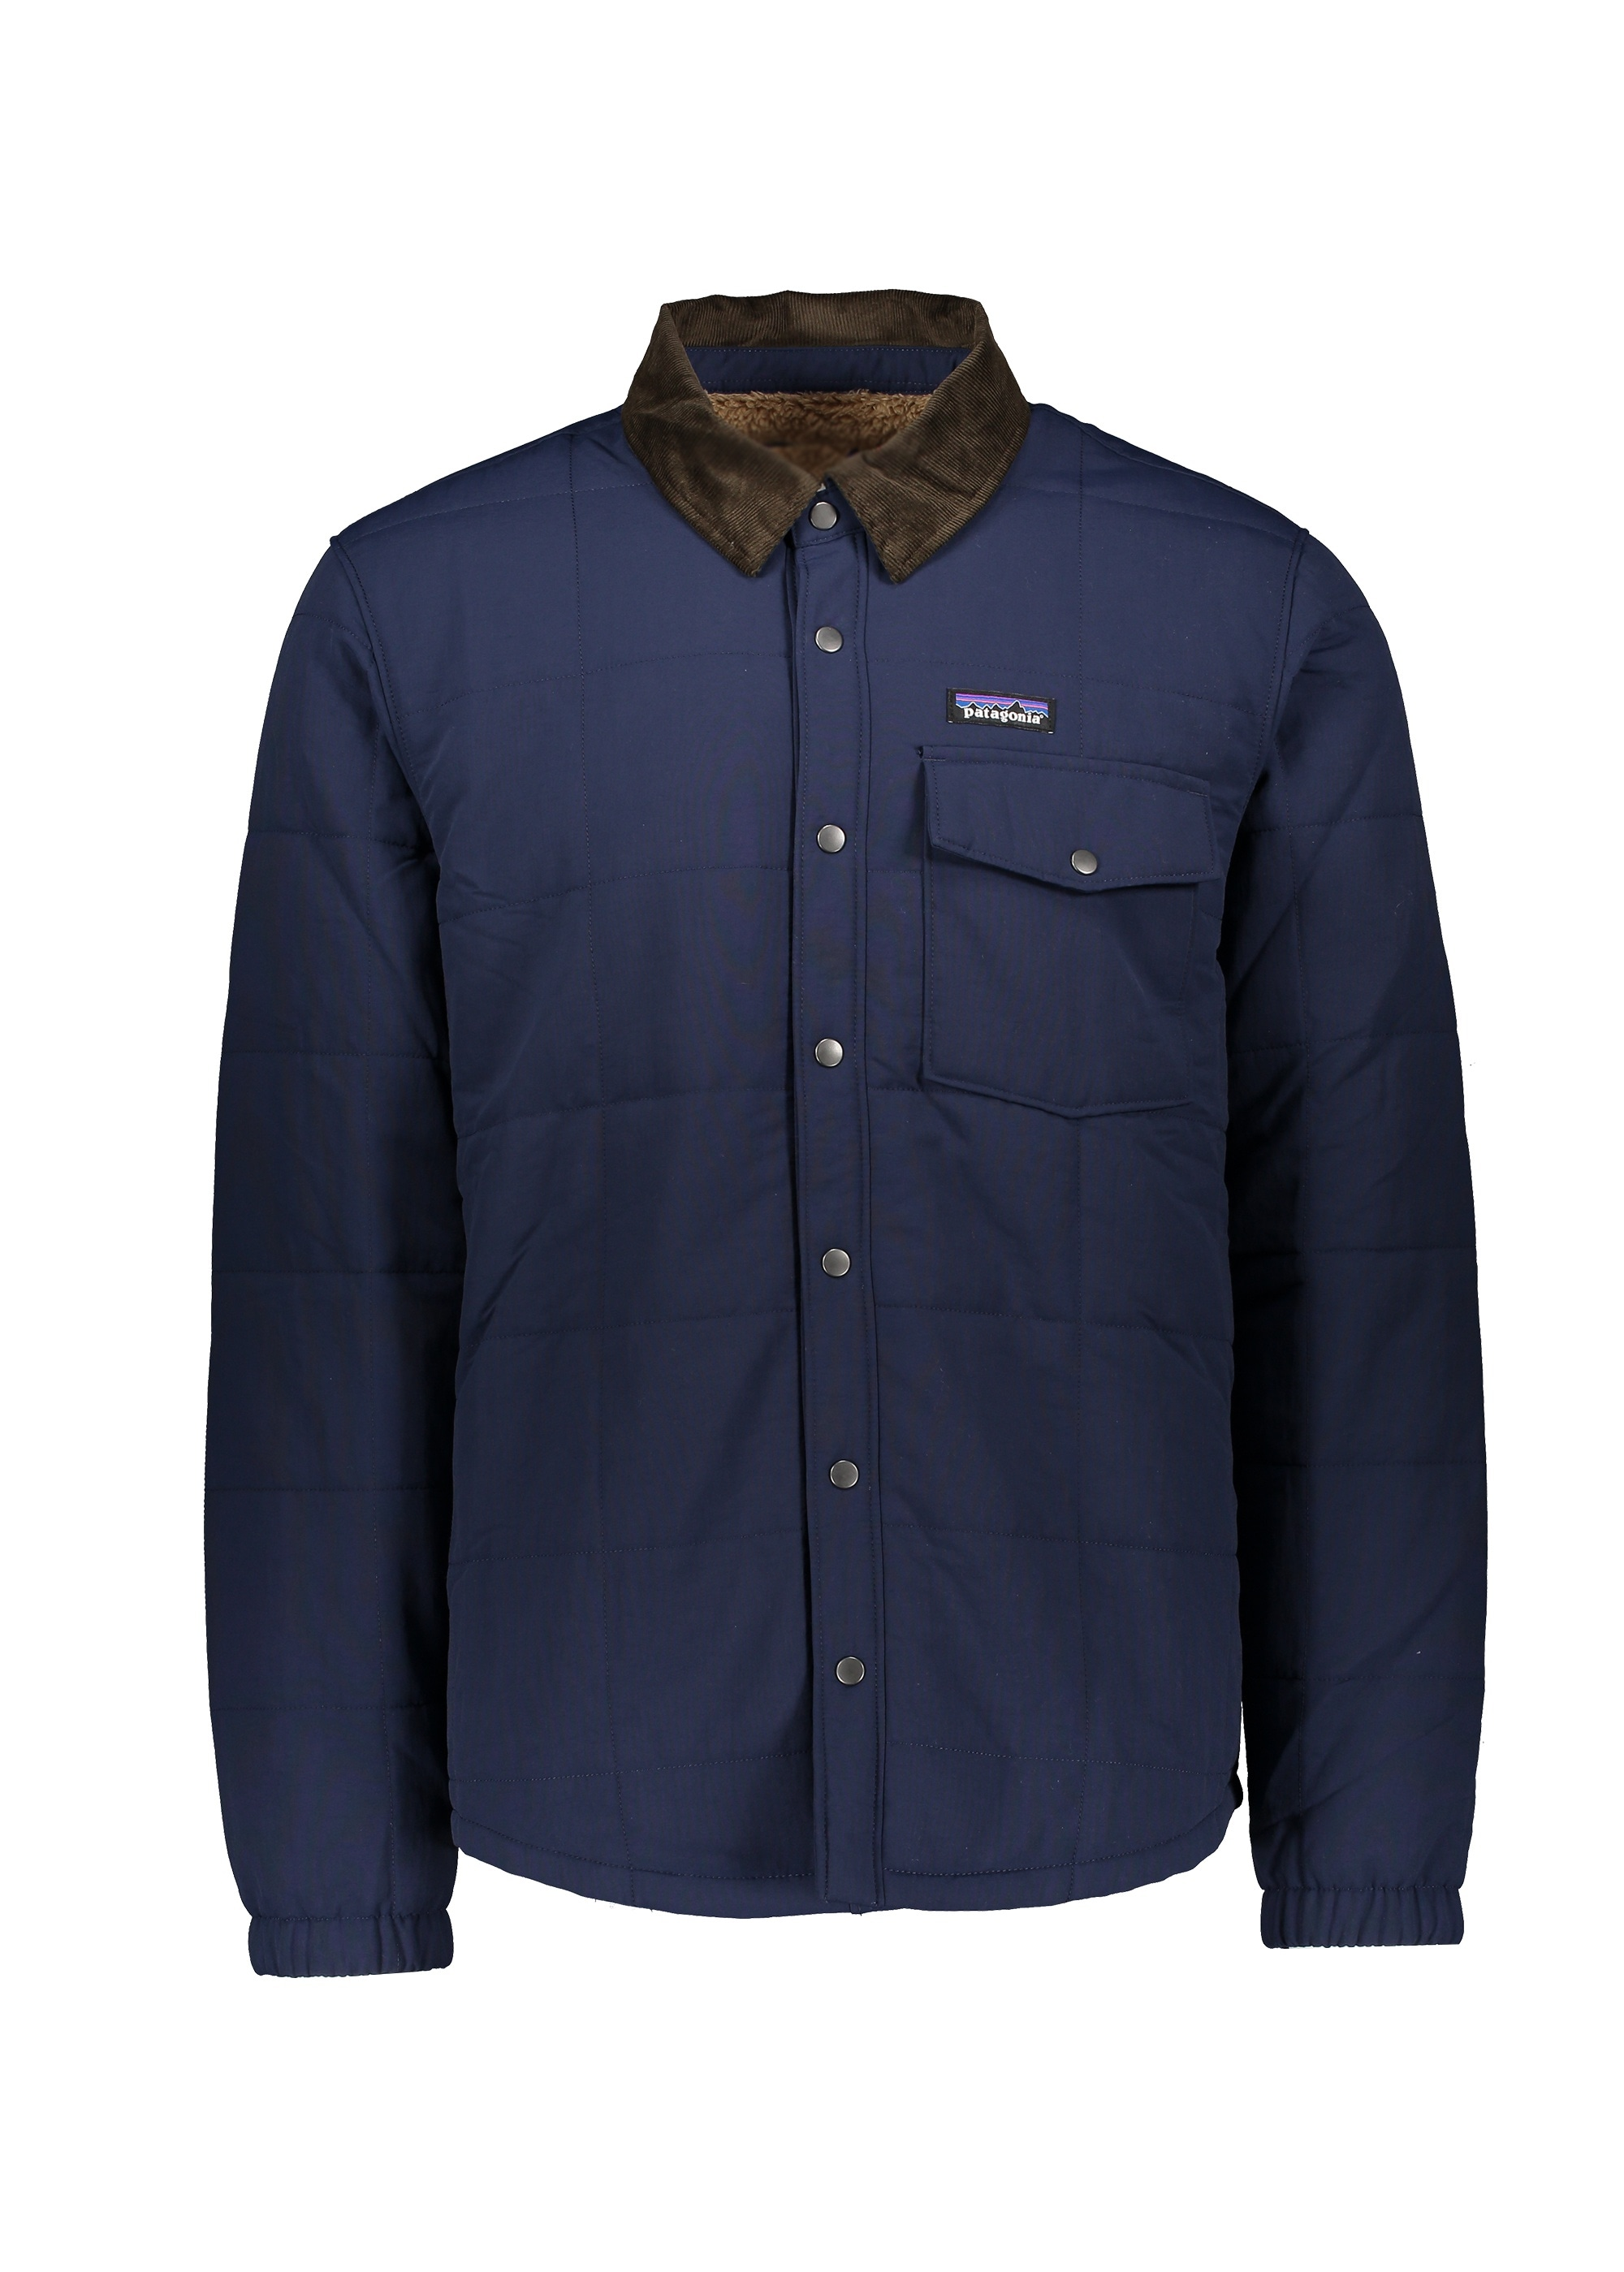 Patagonia Isthmus Quilted Shirt Jacket New Navy